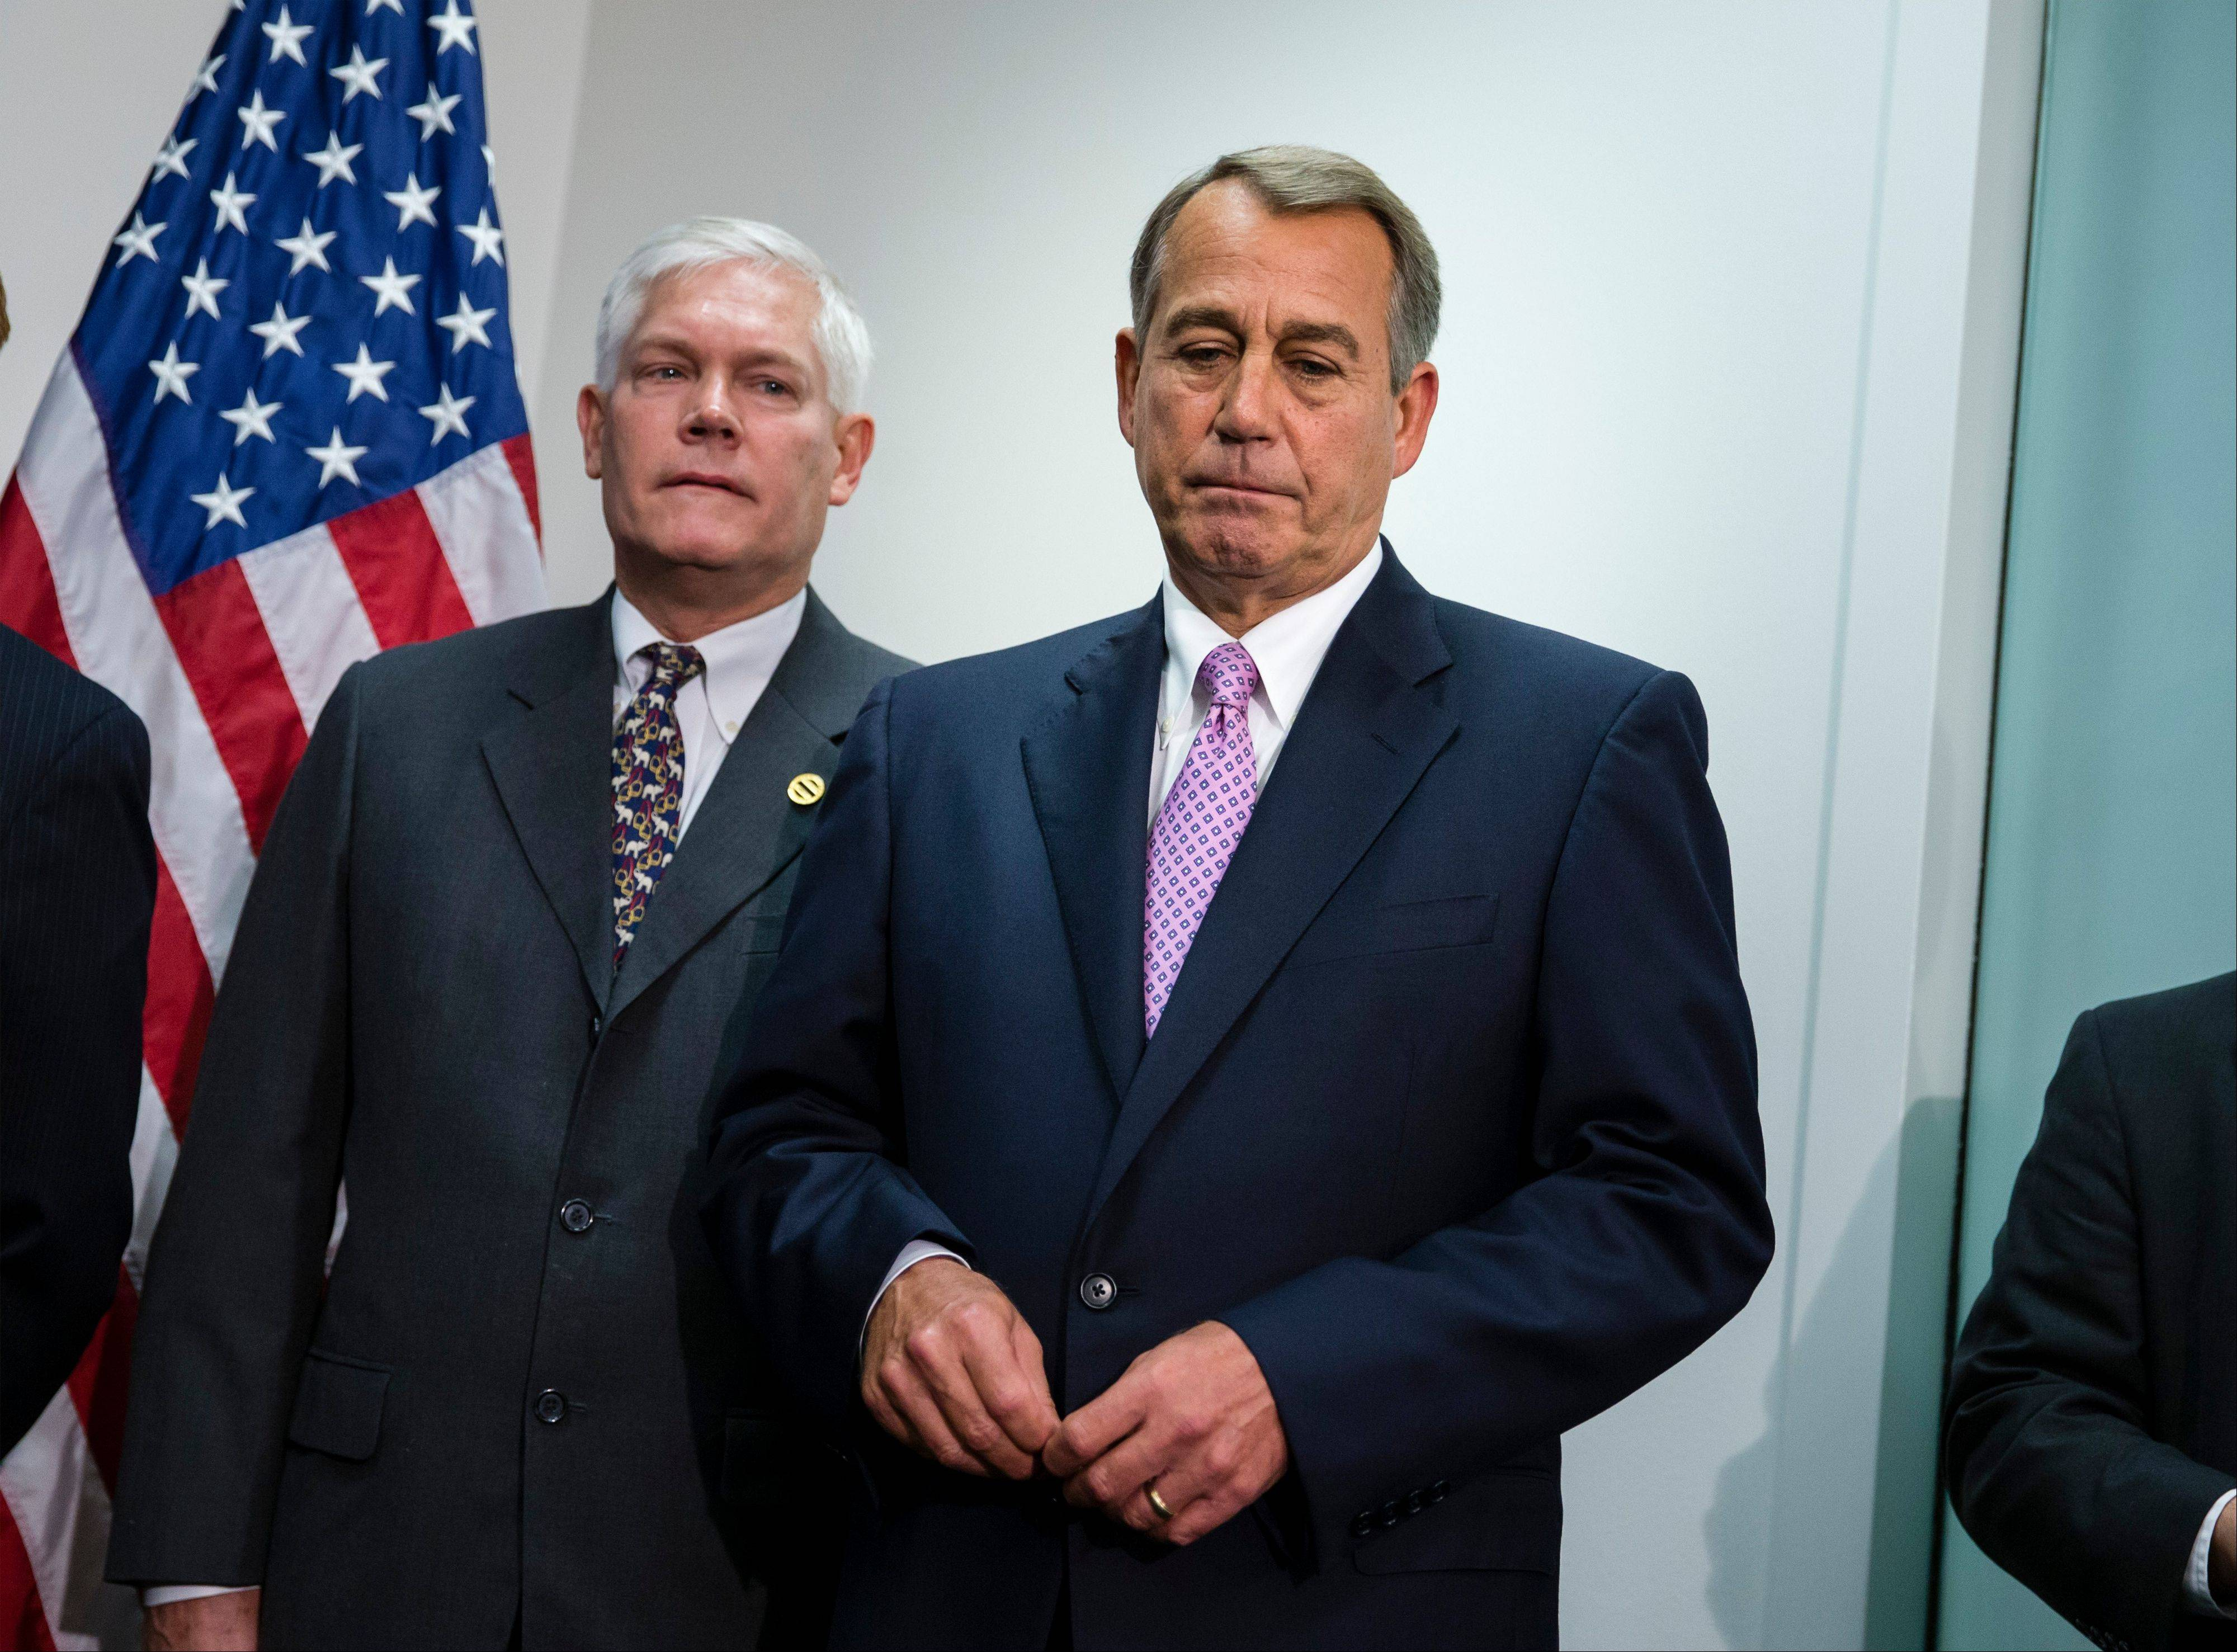 In this Oct. 4, 2013 file photo, Speaker of the House John Boehner, R-Ohio, is joined by Rep. Pete Sessions, R-Texas, left, during a news conference at the Capitol. People hoping for a better-functioning government canít decide whether to cheer or lament Congressí bipartisan budget bill. Legislative leaders call a breakthrough even as they acknowledge it does little.